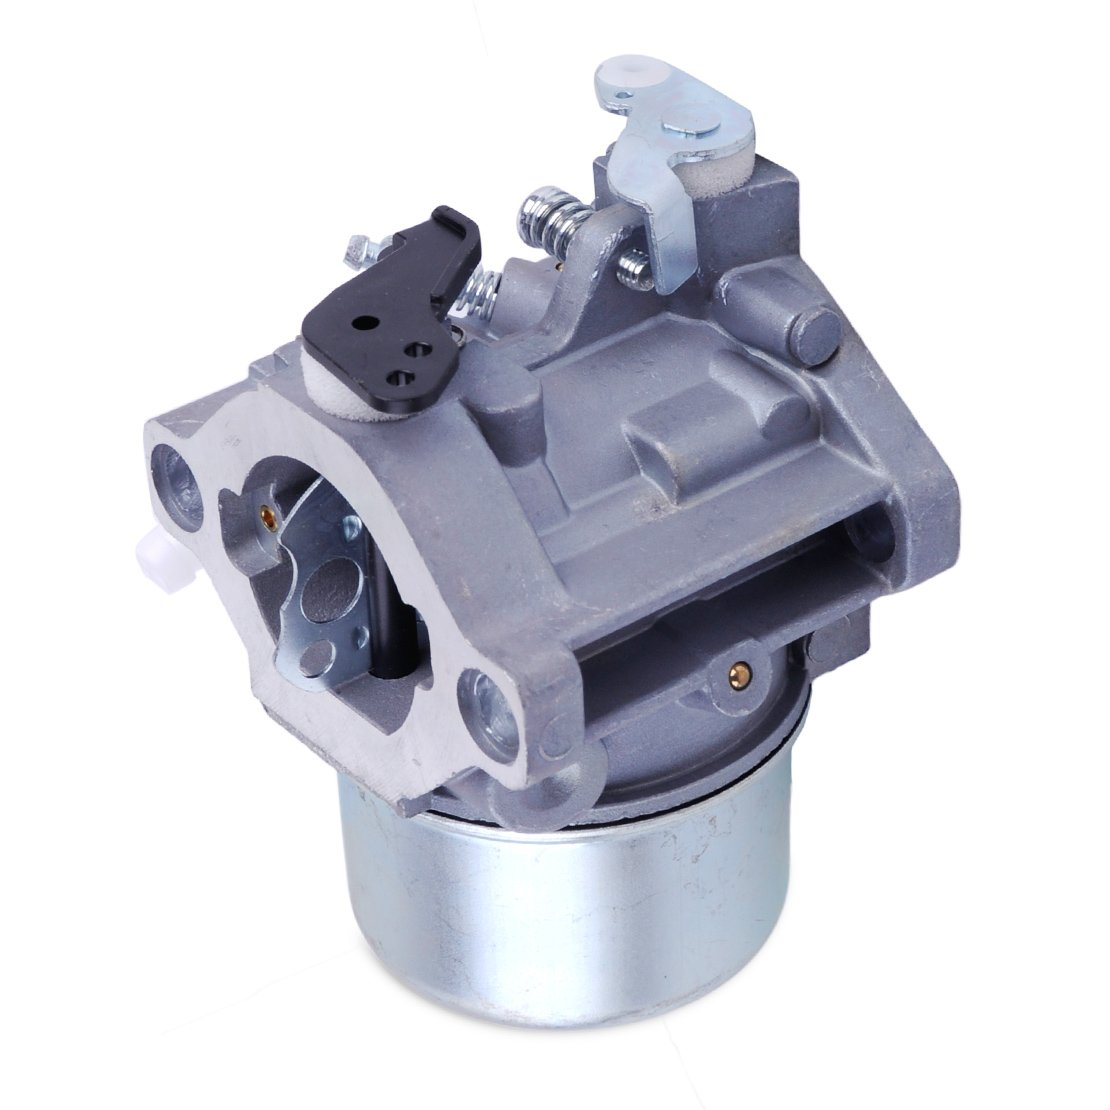 Carburator Replacement Fit for Briggs & Stratton B&S Parts OEM 699831 Tractors   Engine